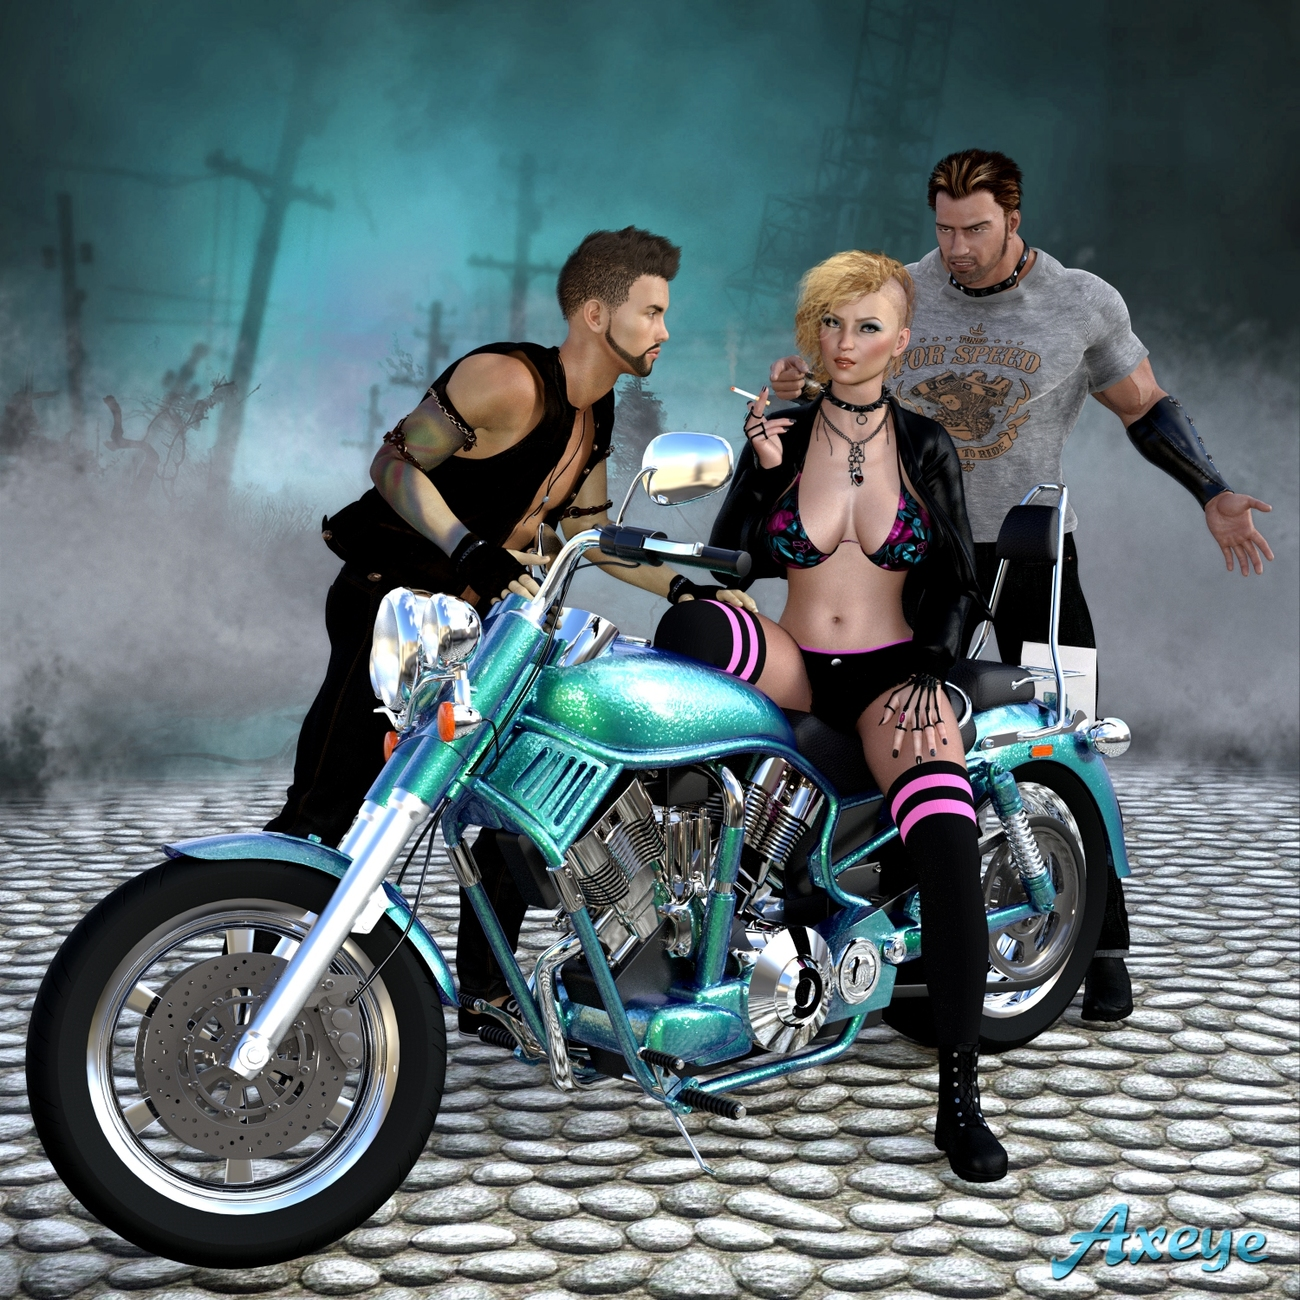 Easy Rider by Axeye